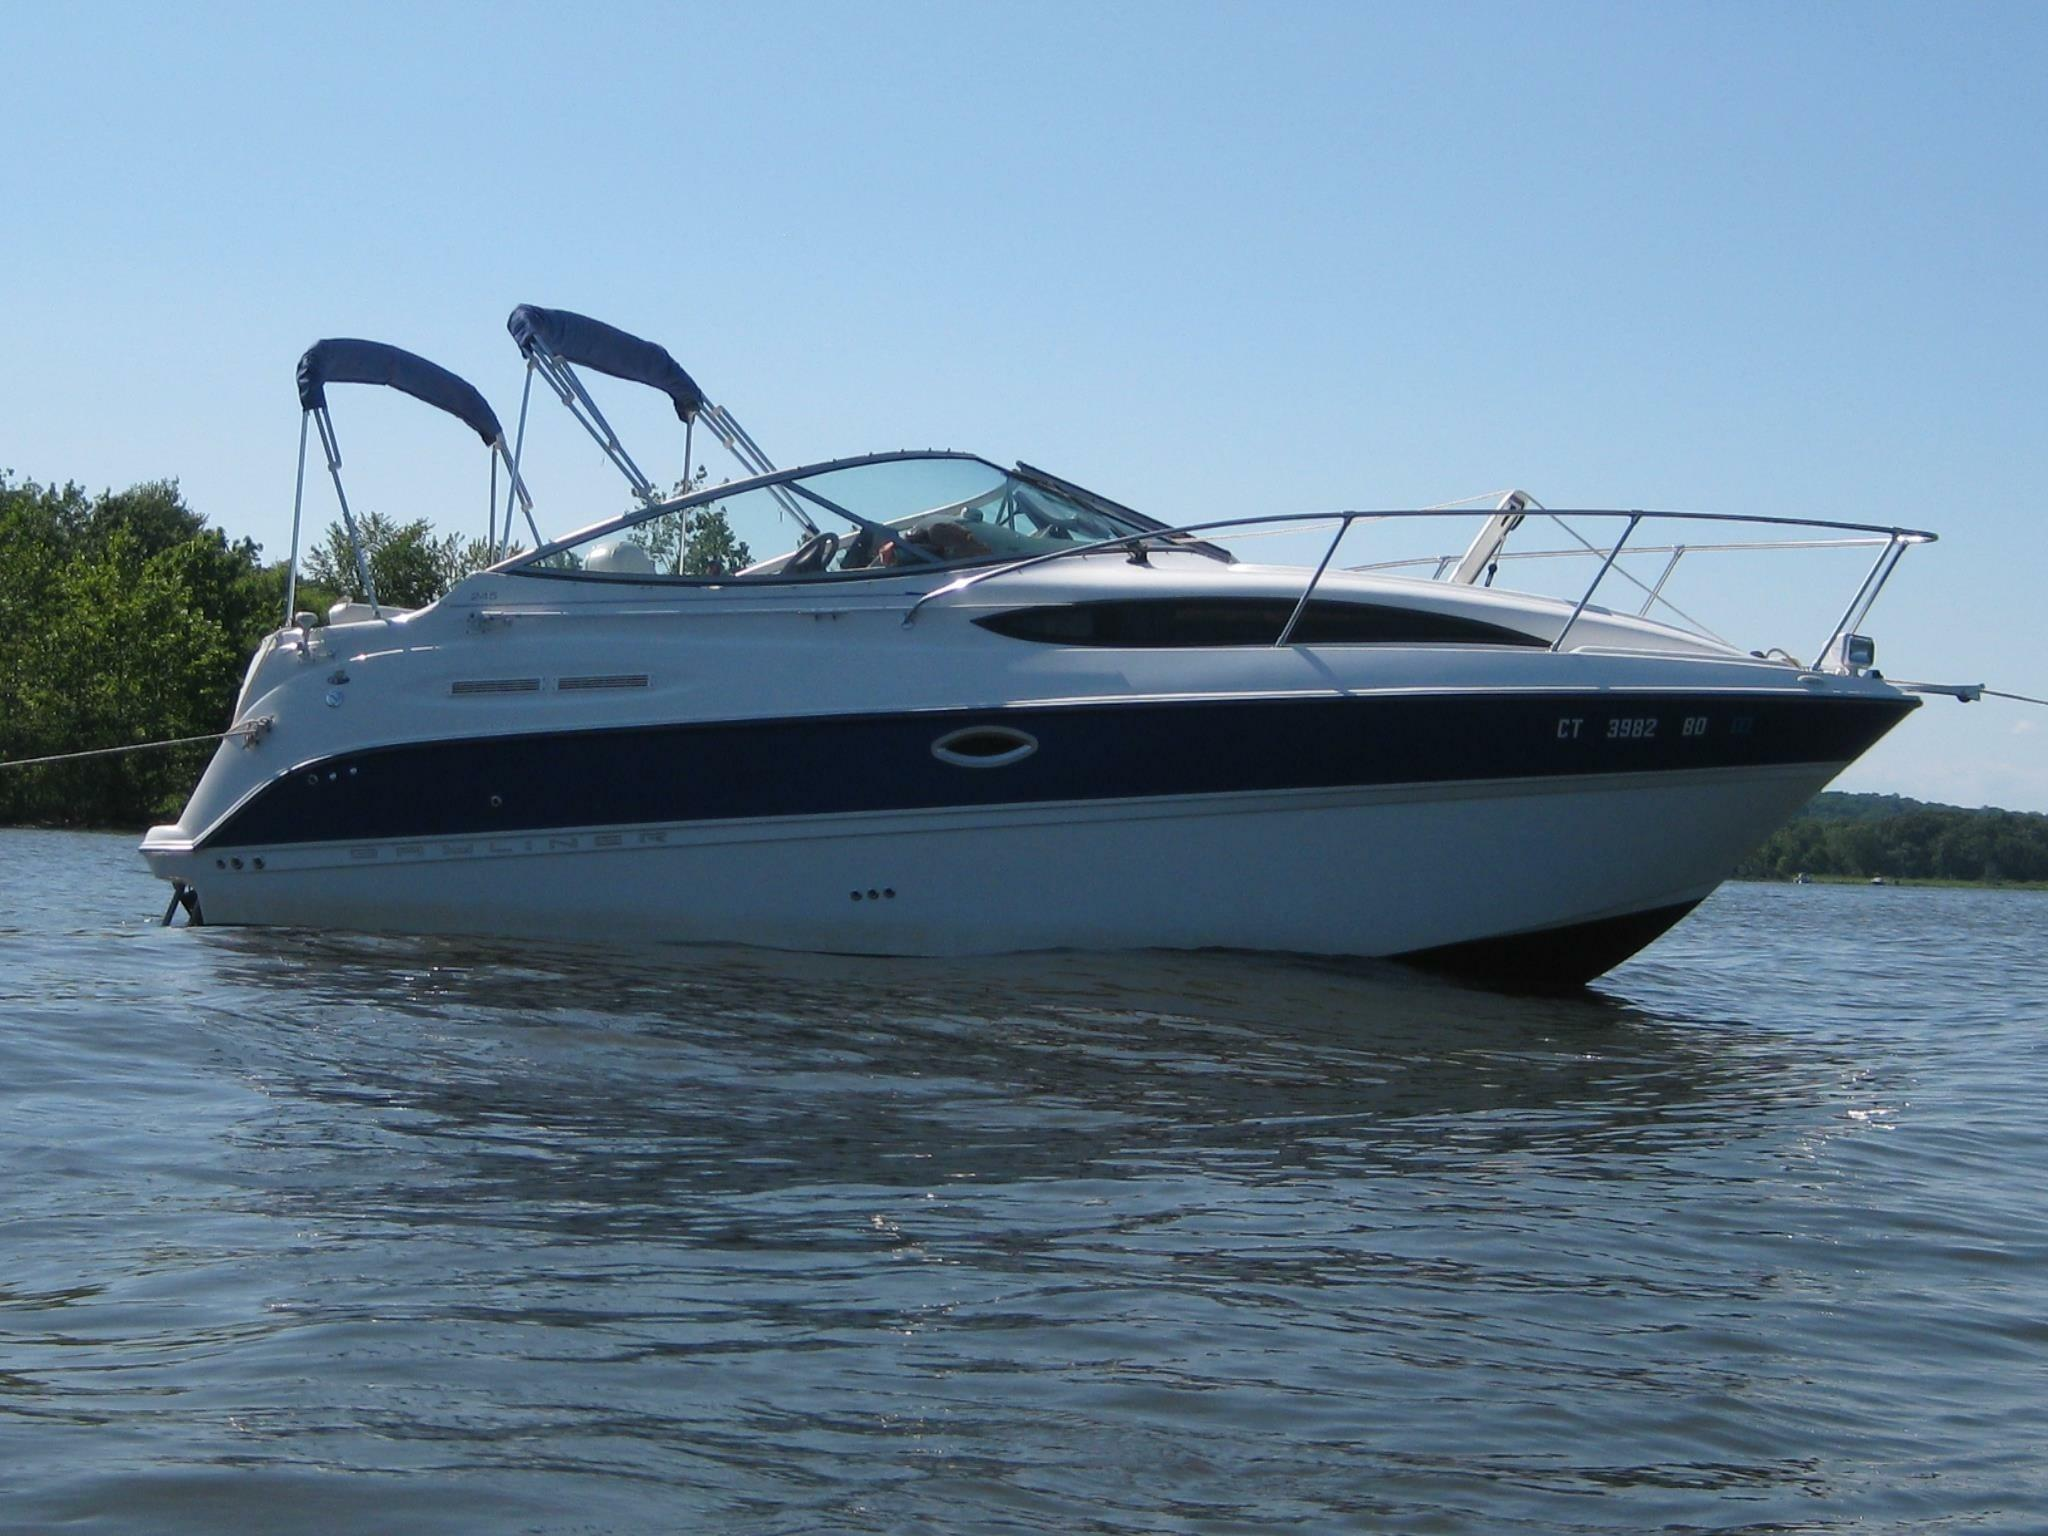 Bayliner 245 Wiring Diagram Trusted Diagrams Tachometer 2006 Cruiser Power Boat For Sale Www Yachtworld Com 2002 Capri 1950